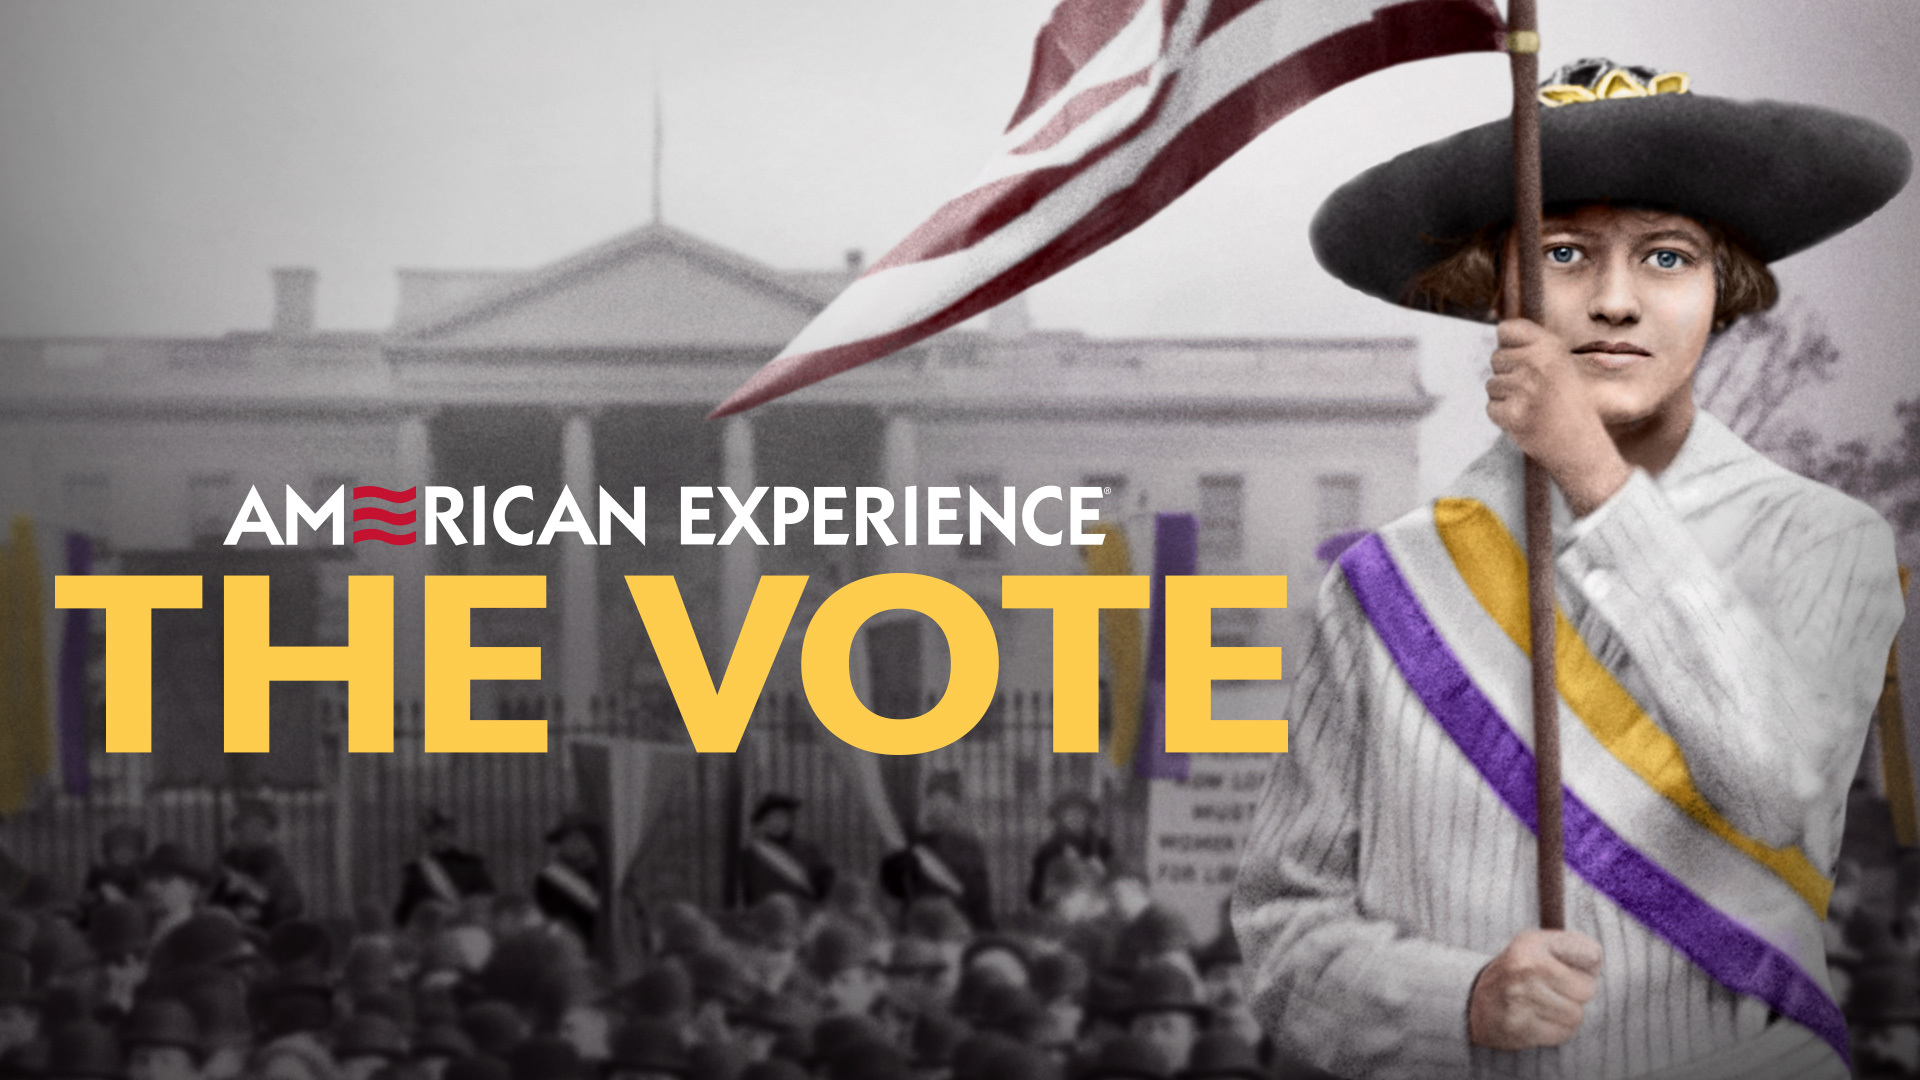 The Vote: American Experience